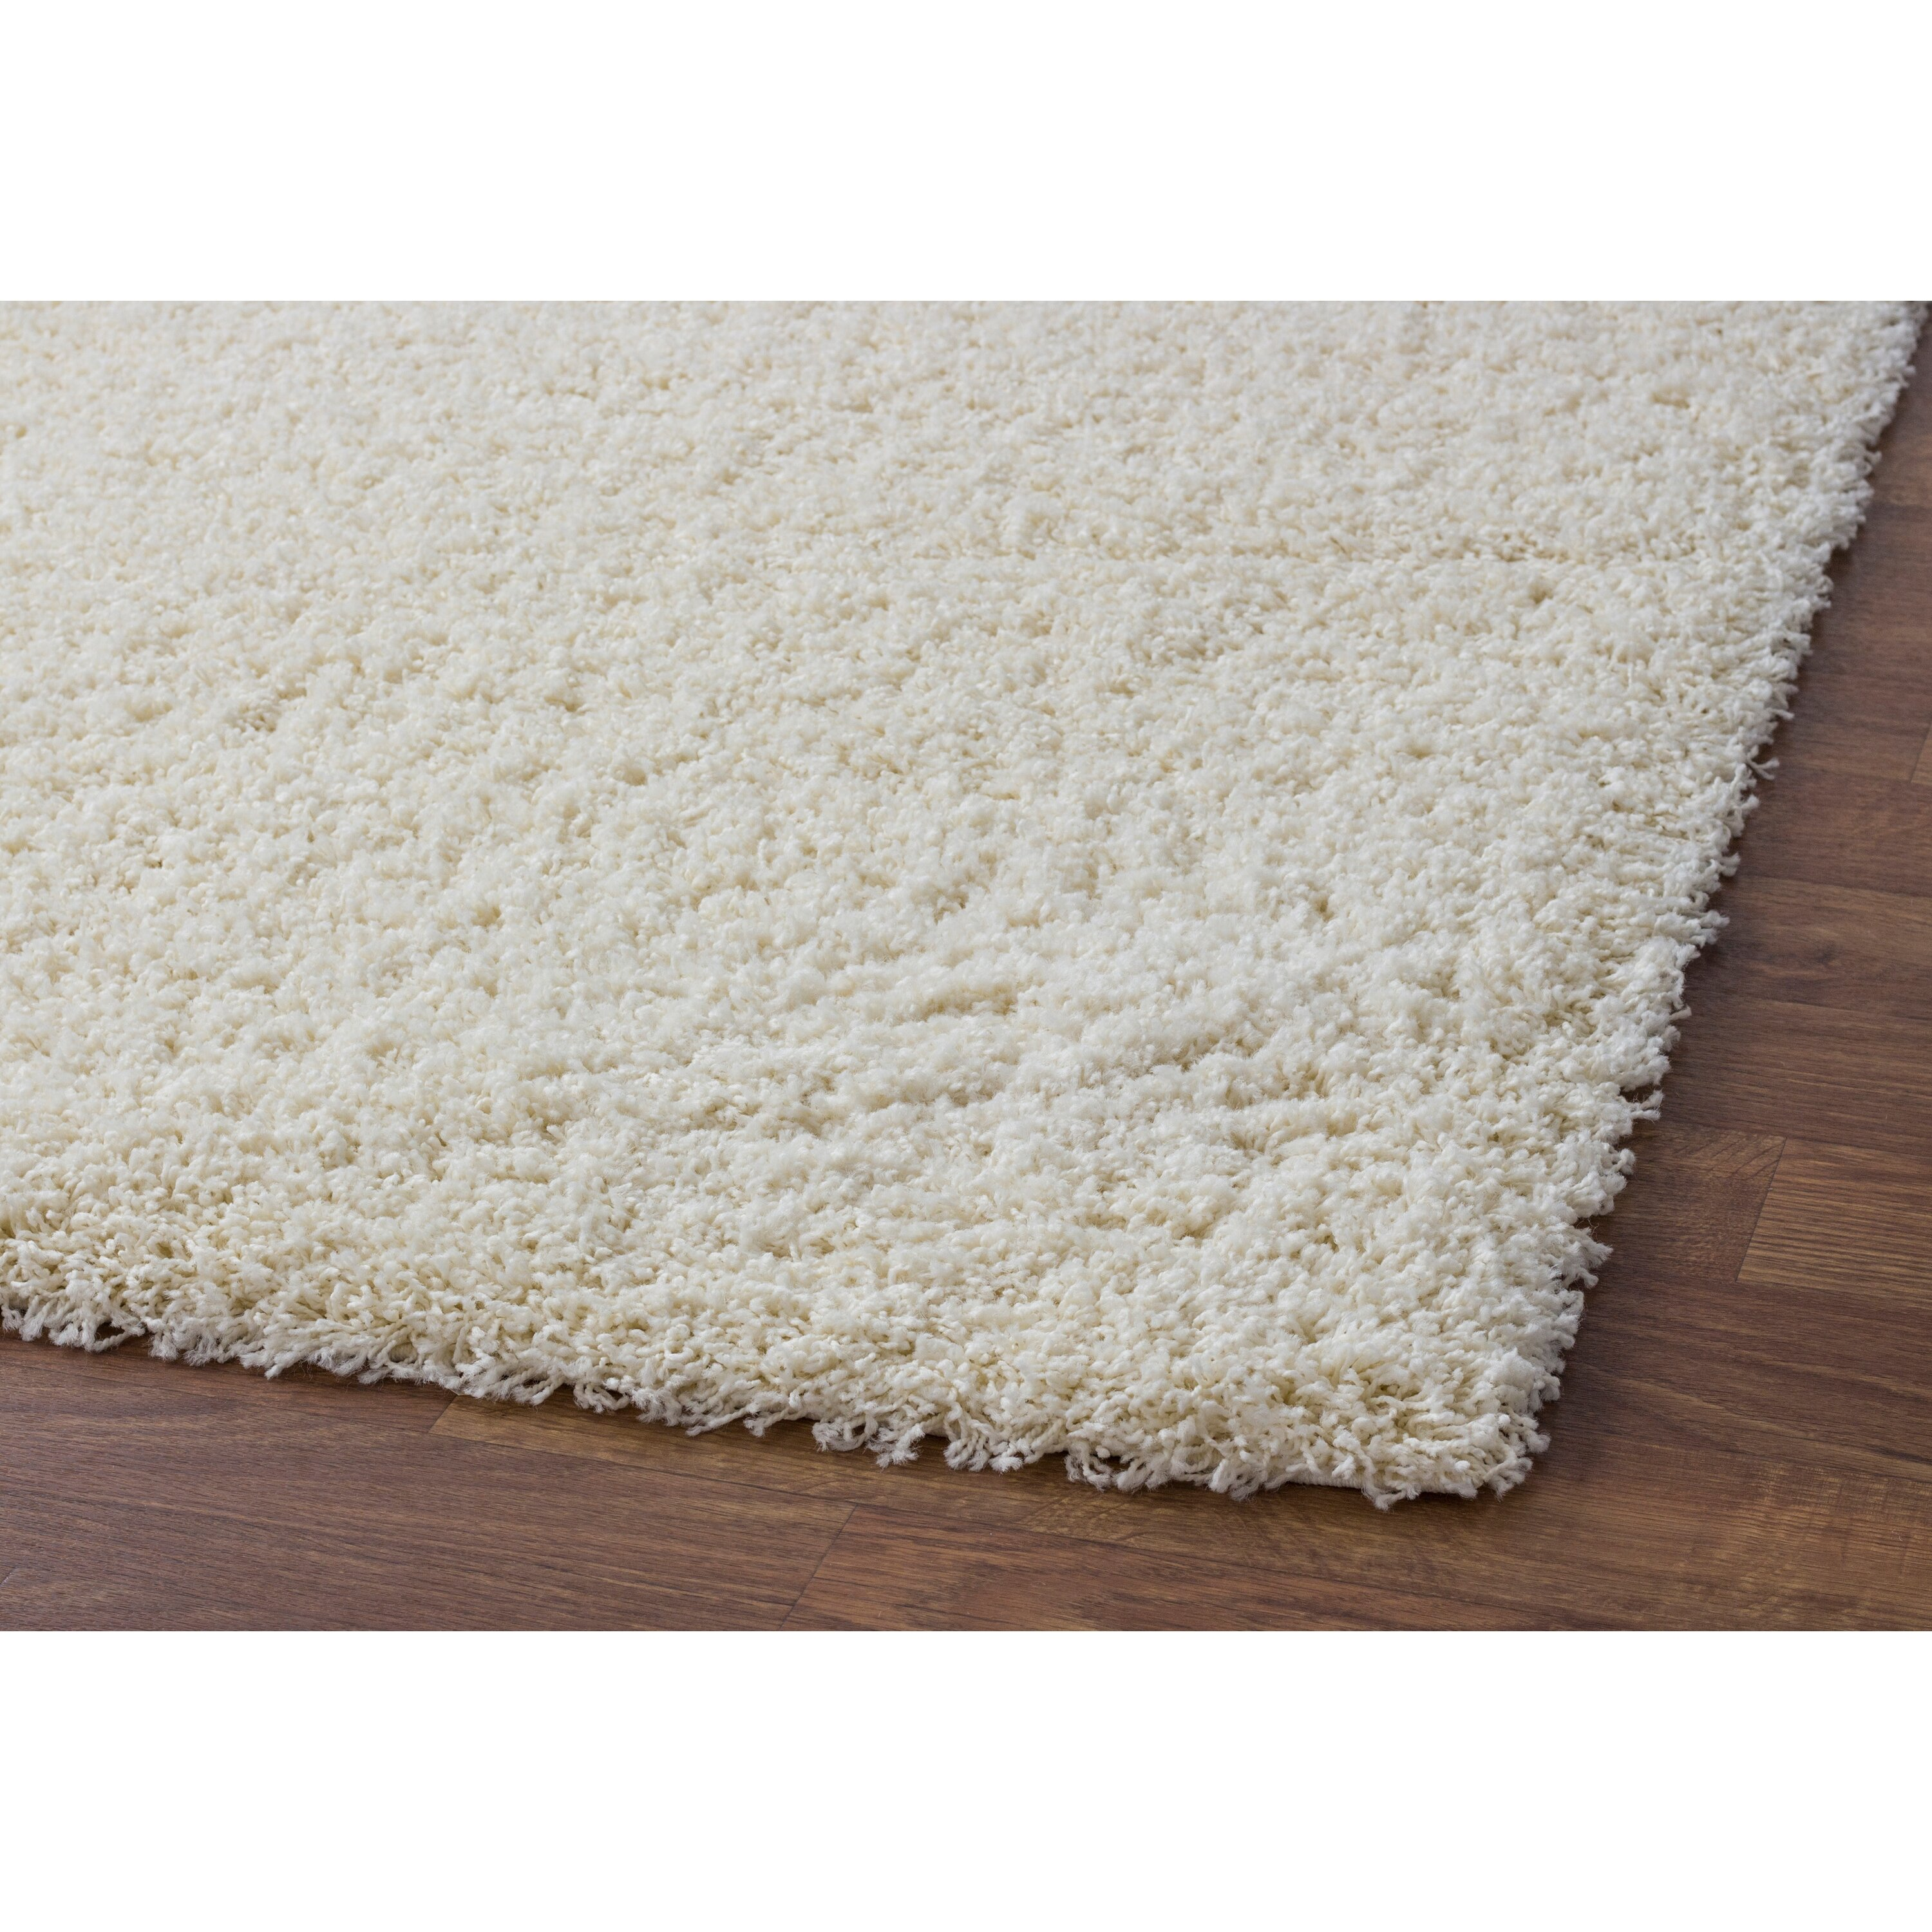 Super Area Rugs Vanilla Cream Area Rug Wayfair